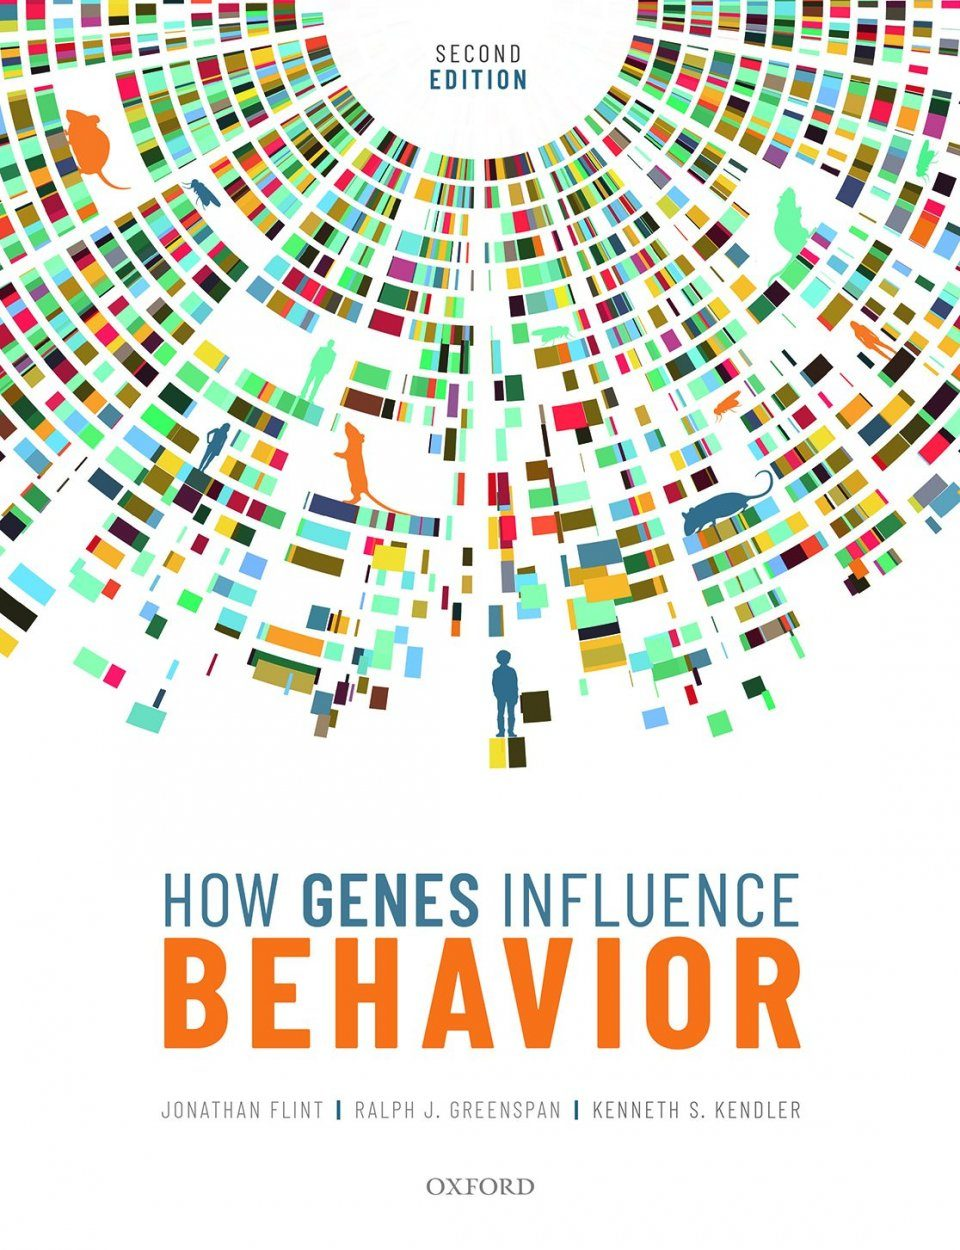 How Genes Influence Behavior